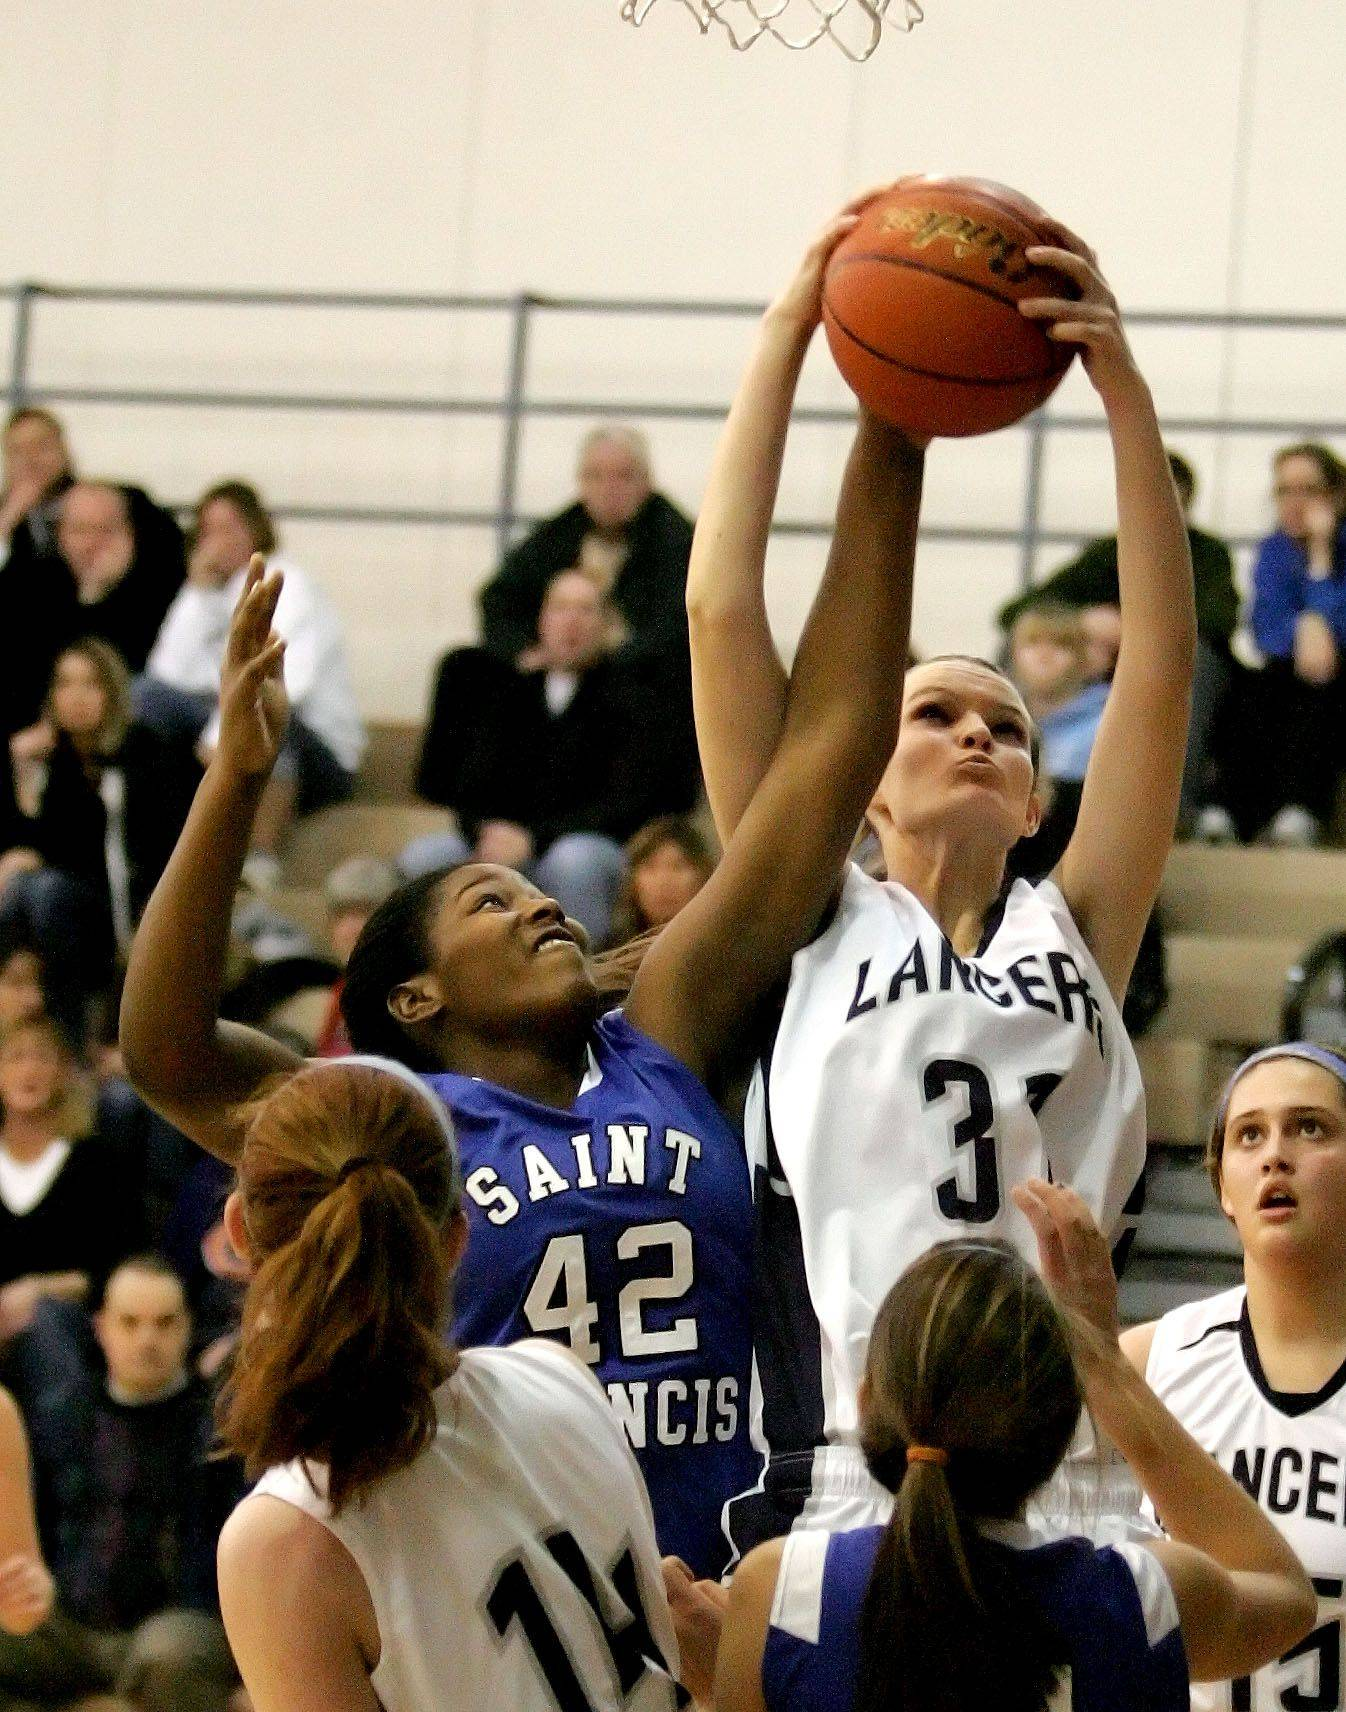 Tia Talley, left of St. Francis and Ashleigh Ricchio, right, of Lake Park go up for a rebound.